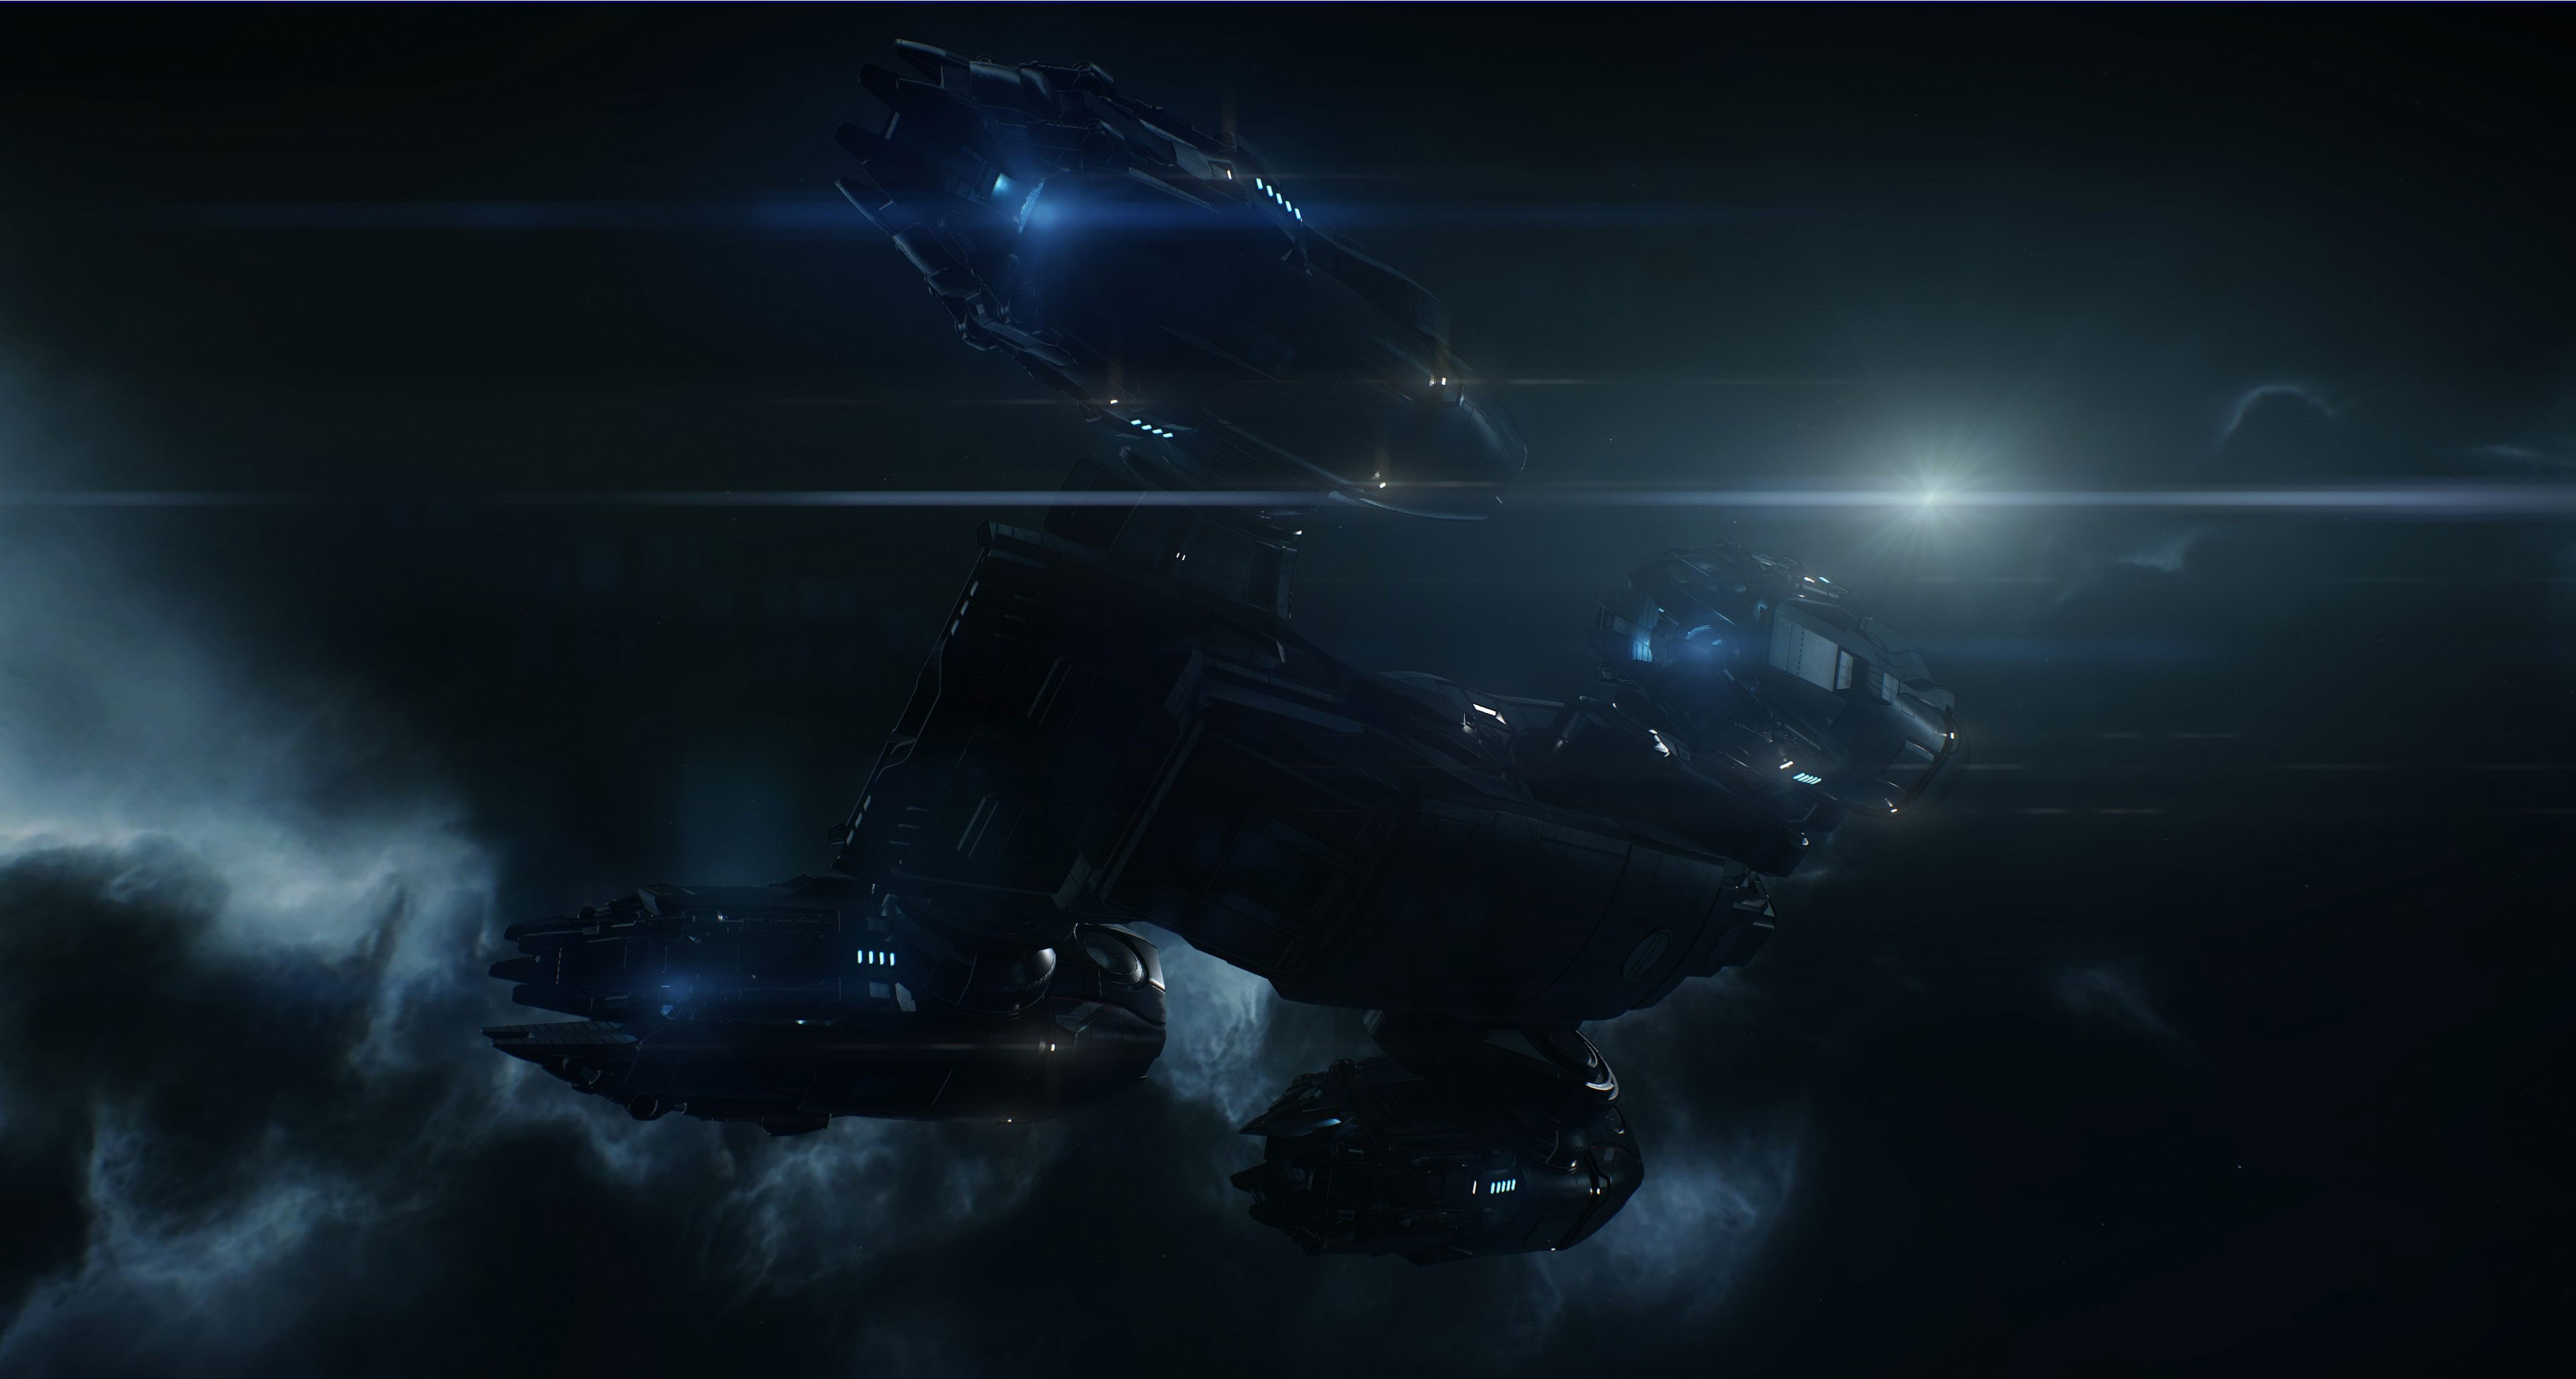 Sci Fi Iphone Wallpaper Space Star Citizen Spaceship Wallpapers Hd Desktop And